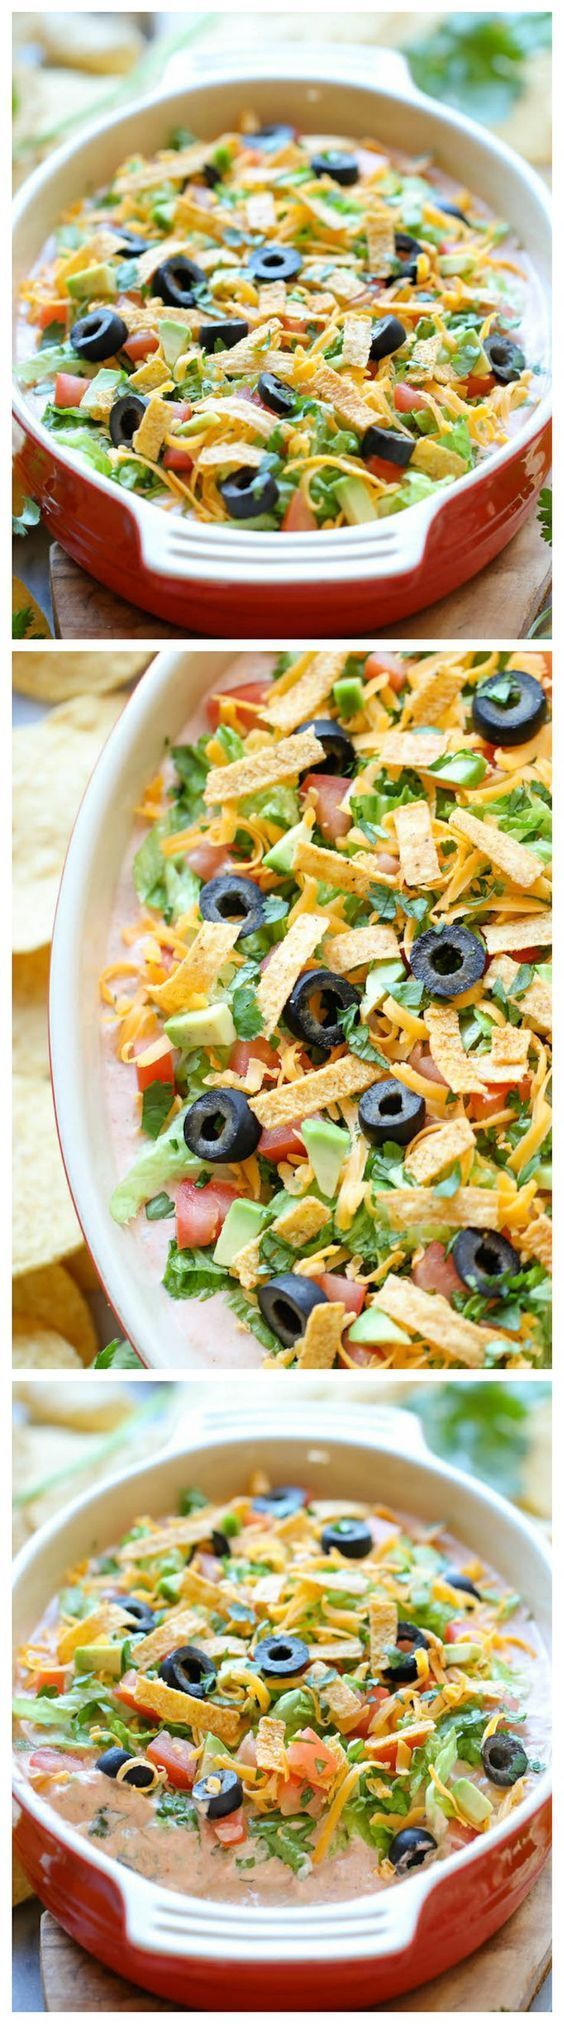 Skinny Taco Dip - Skip the guilt in this lightened up, super easy,10-min taco dip. Perfect as a party appetizer for game day!